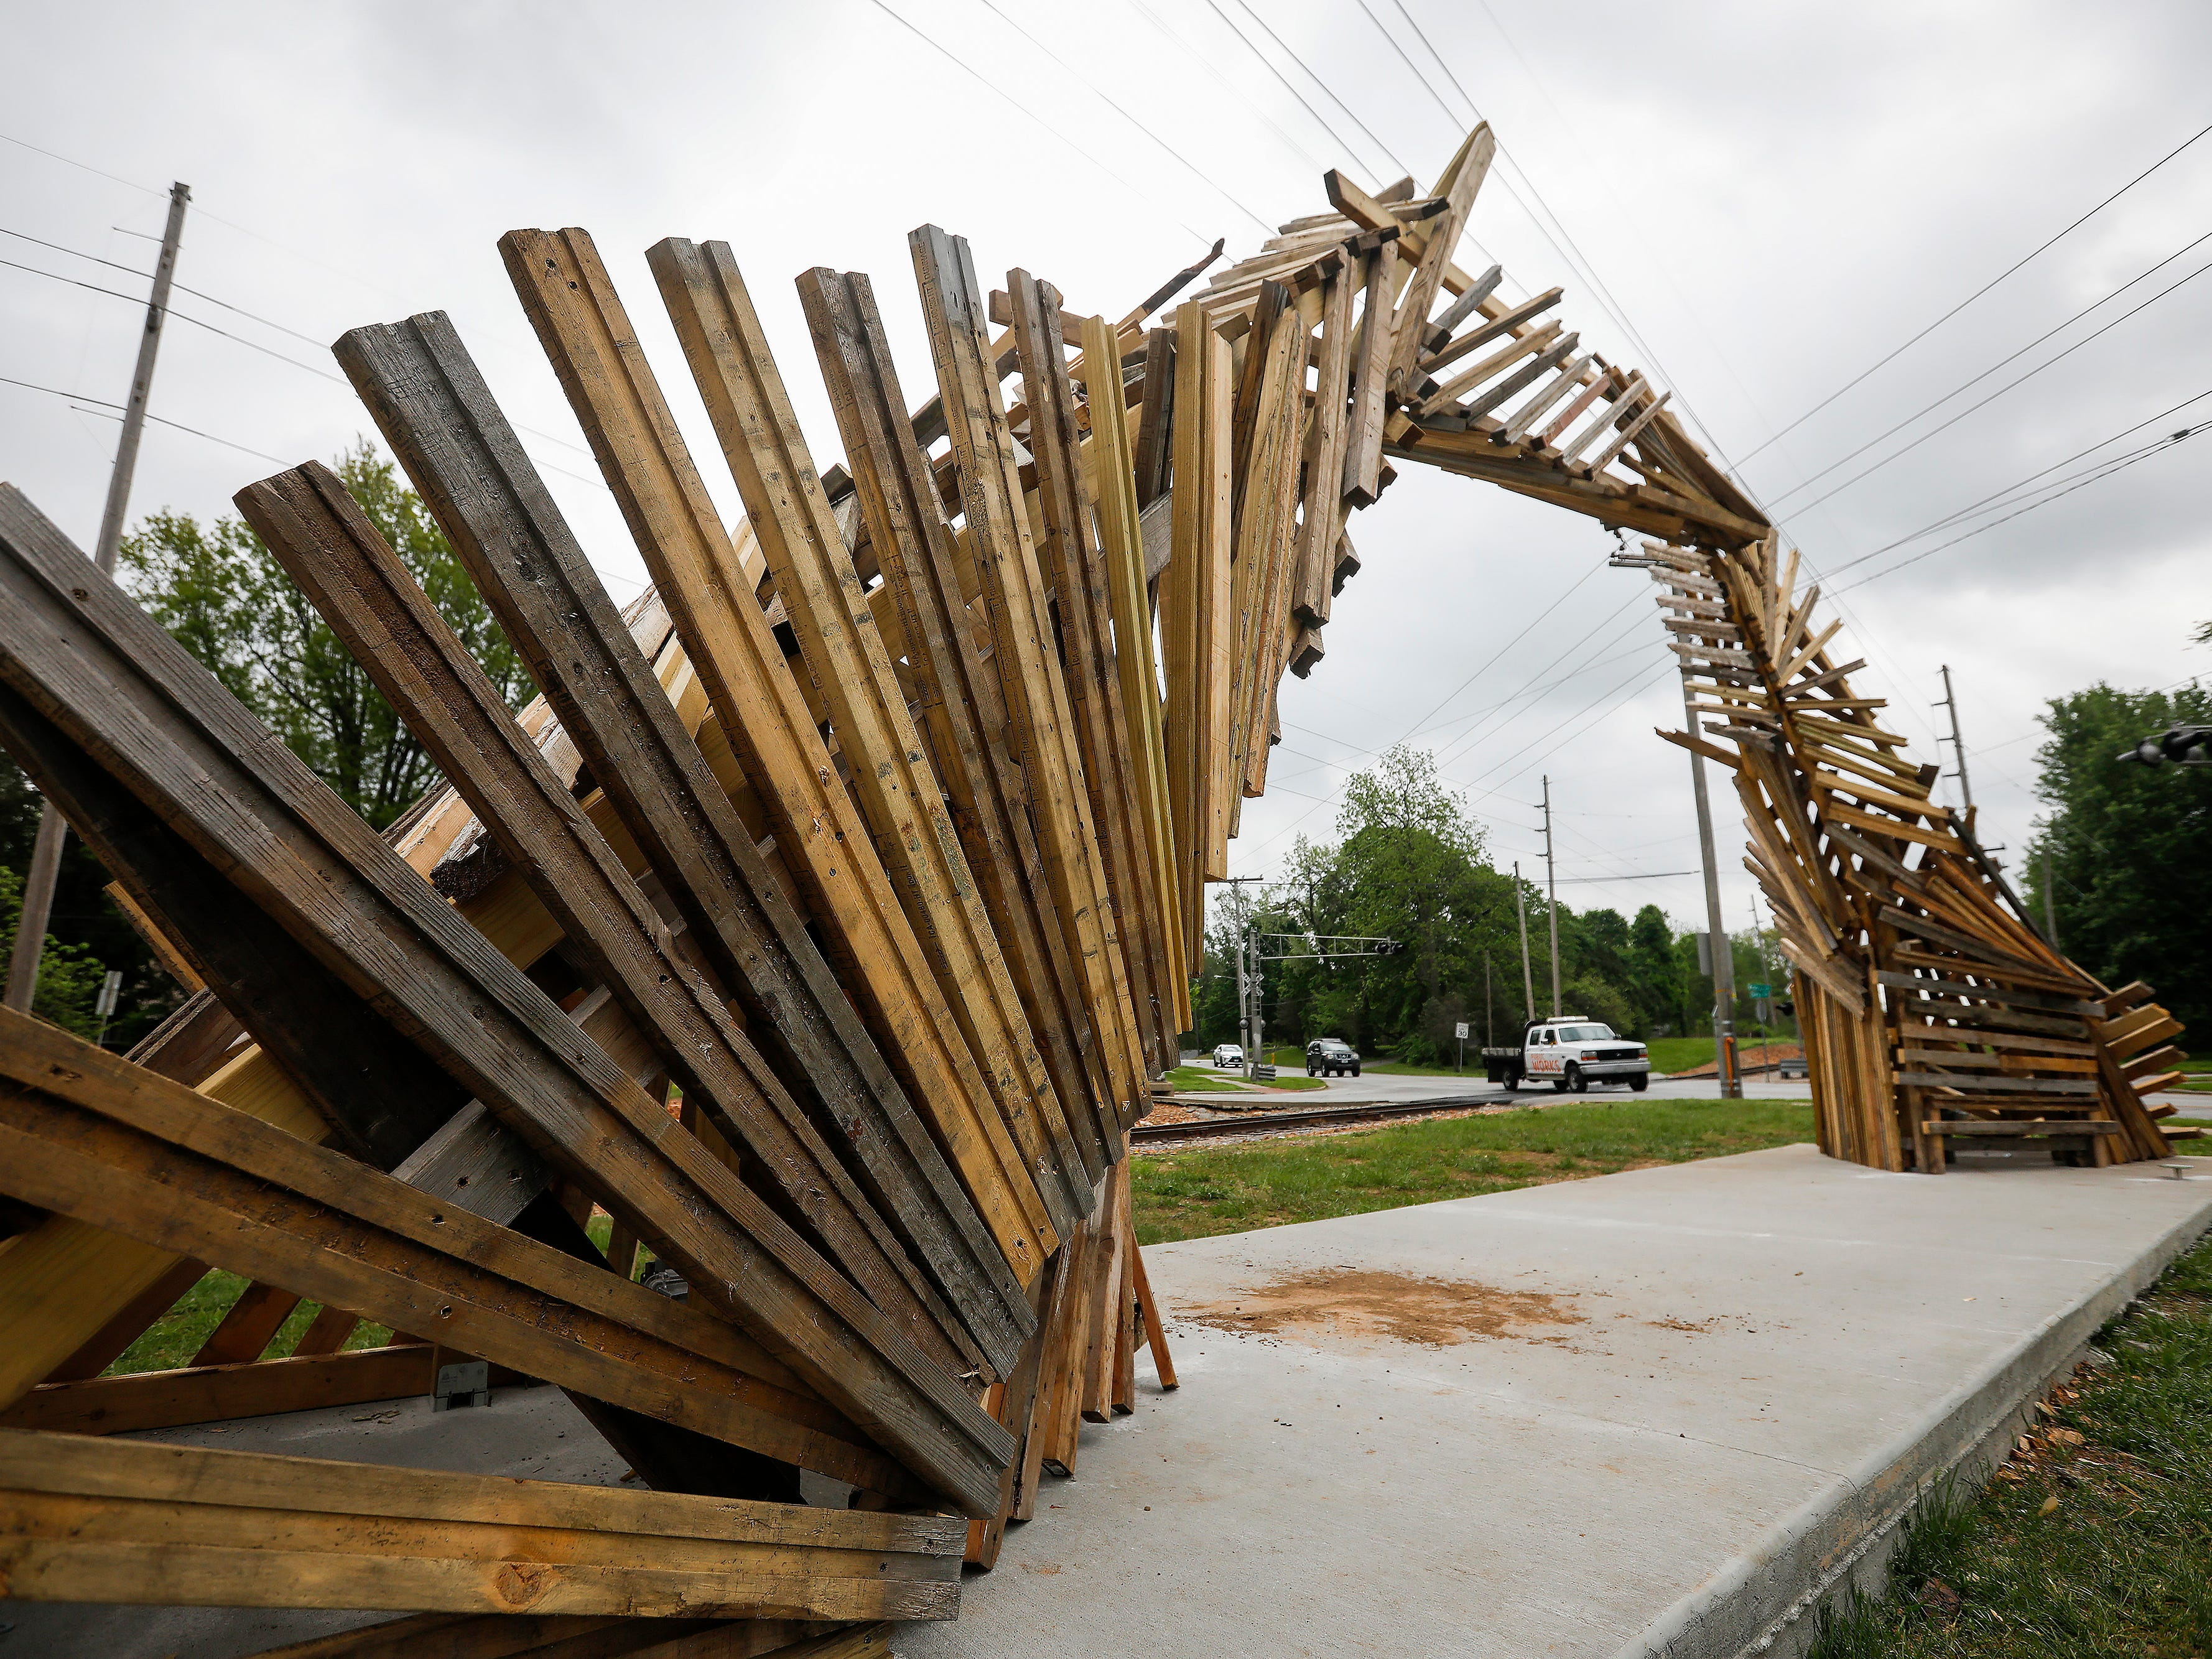 """Portal #5"" by Gabe Meyer and Jared Zillig is located on Cherry Street at Tie & Timber Beer Co."